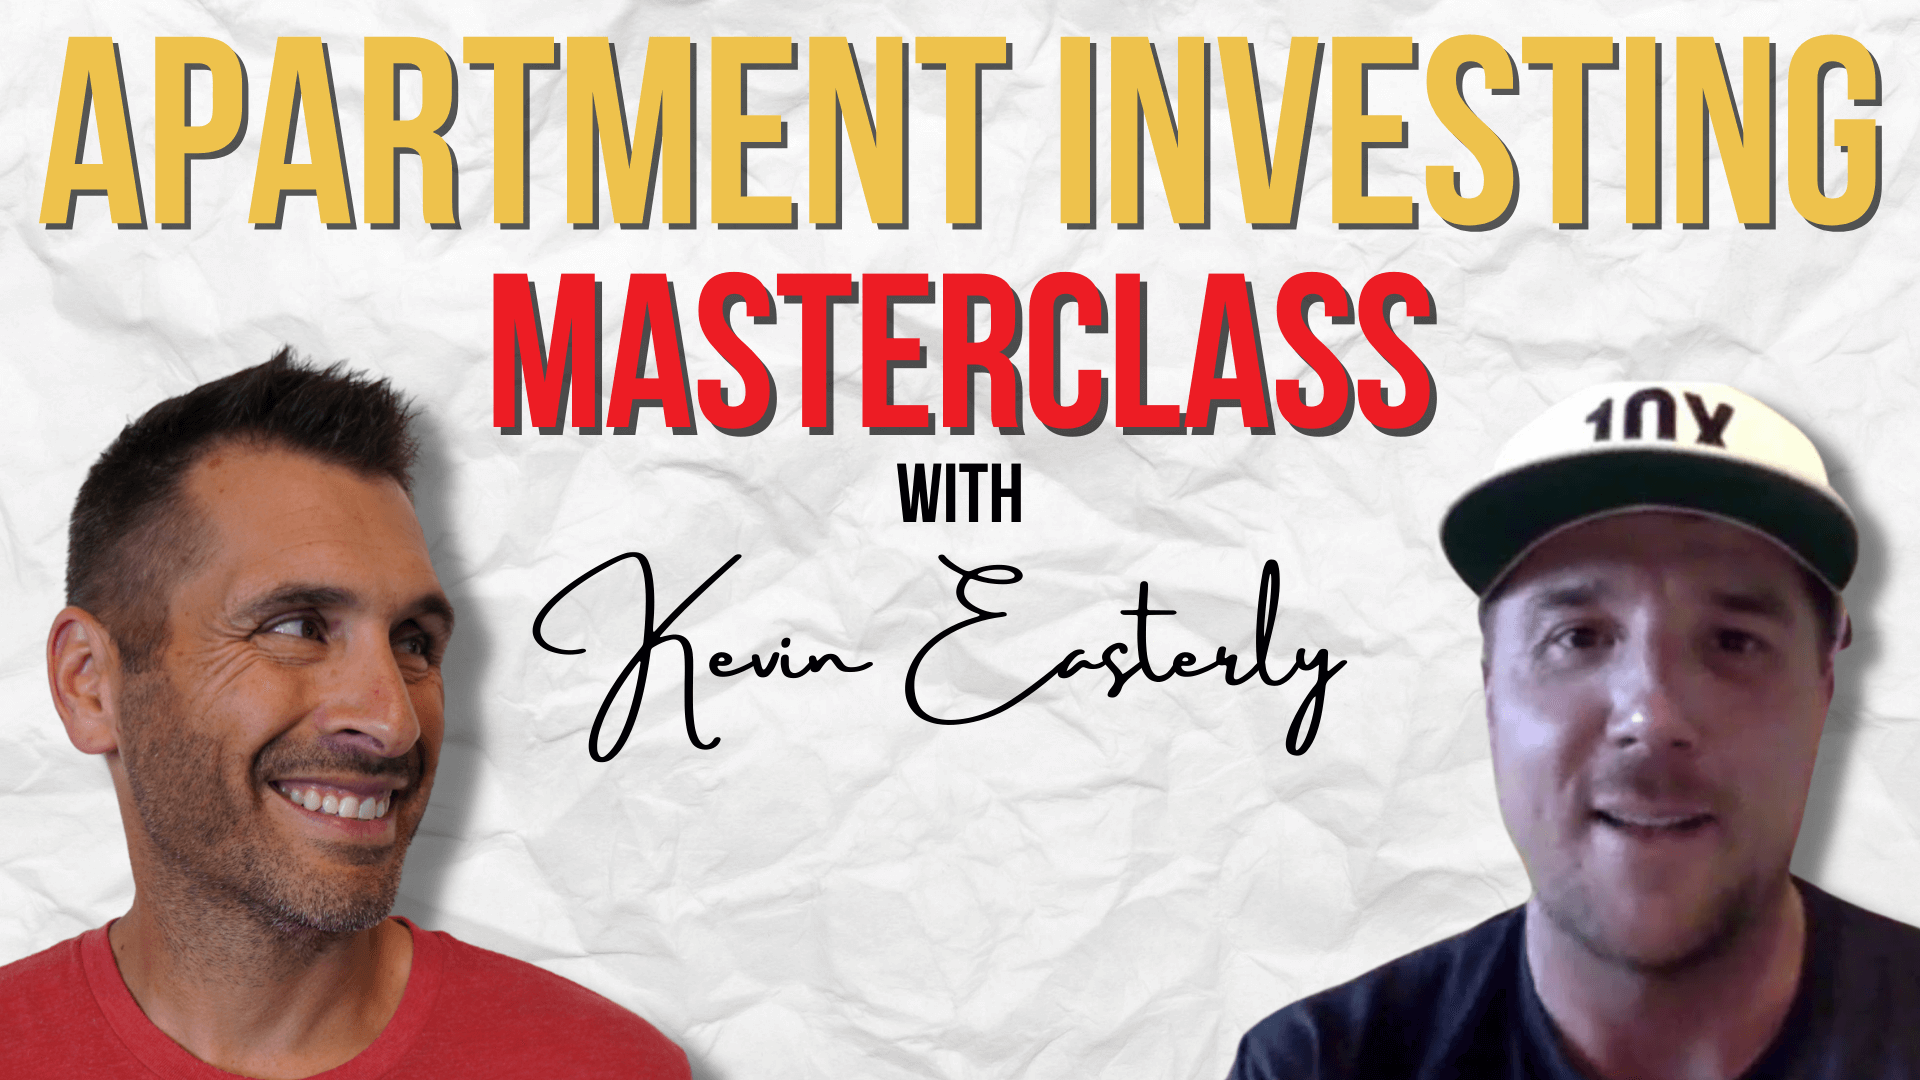 Apartment Investing Masterclass W/ Kevin Easterly